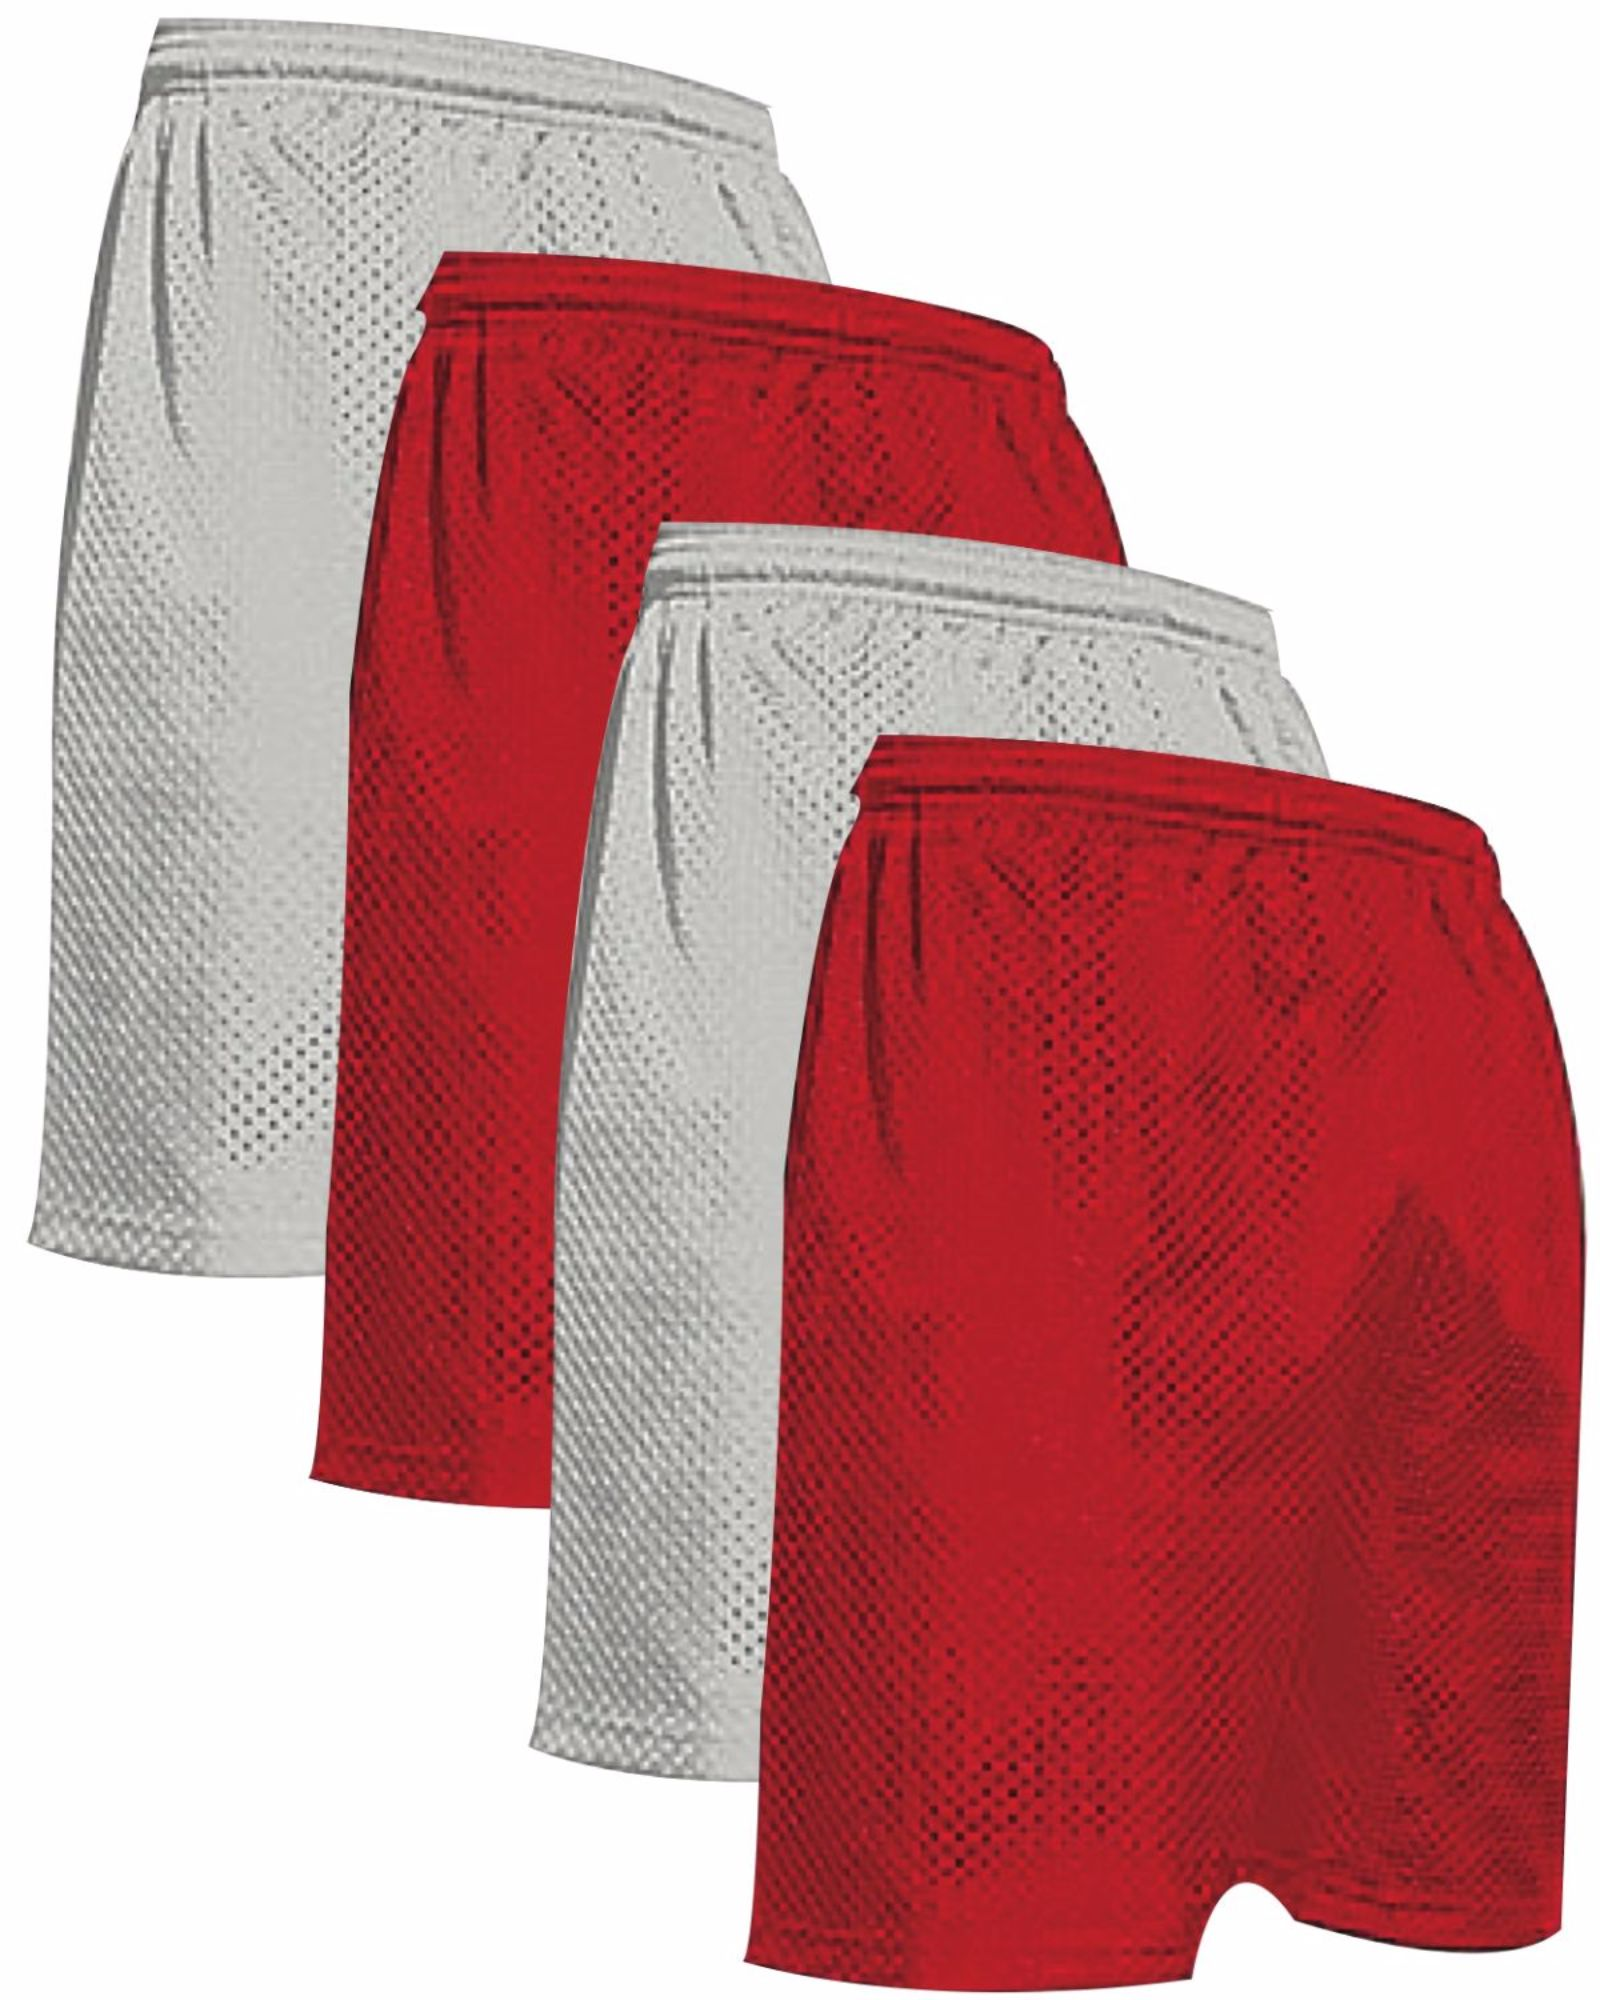 "VALUE PACK  > BUY 2 GET 2 FREE >  4 PACK > THE RAM BRAND > Men's  9"" Performance Pro Mesh Gym Champ Shorts (XS-4XL) $10 S/H is on the 1st Pack only. In this Pack: (XL)(2Silver/2Red)"